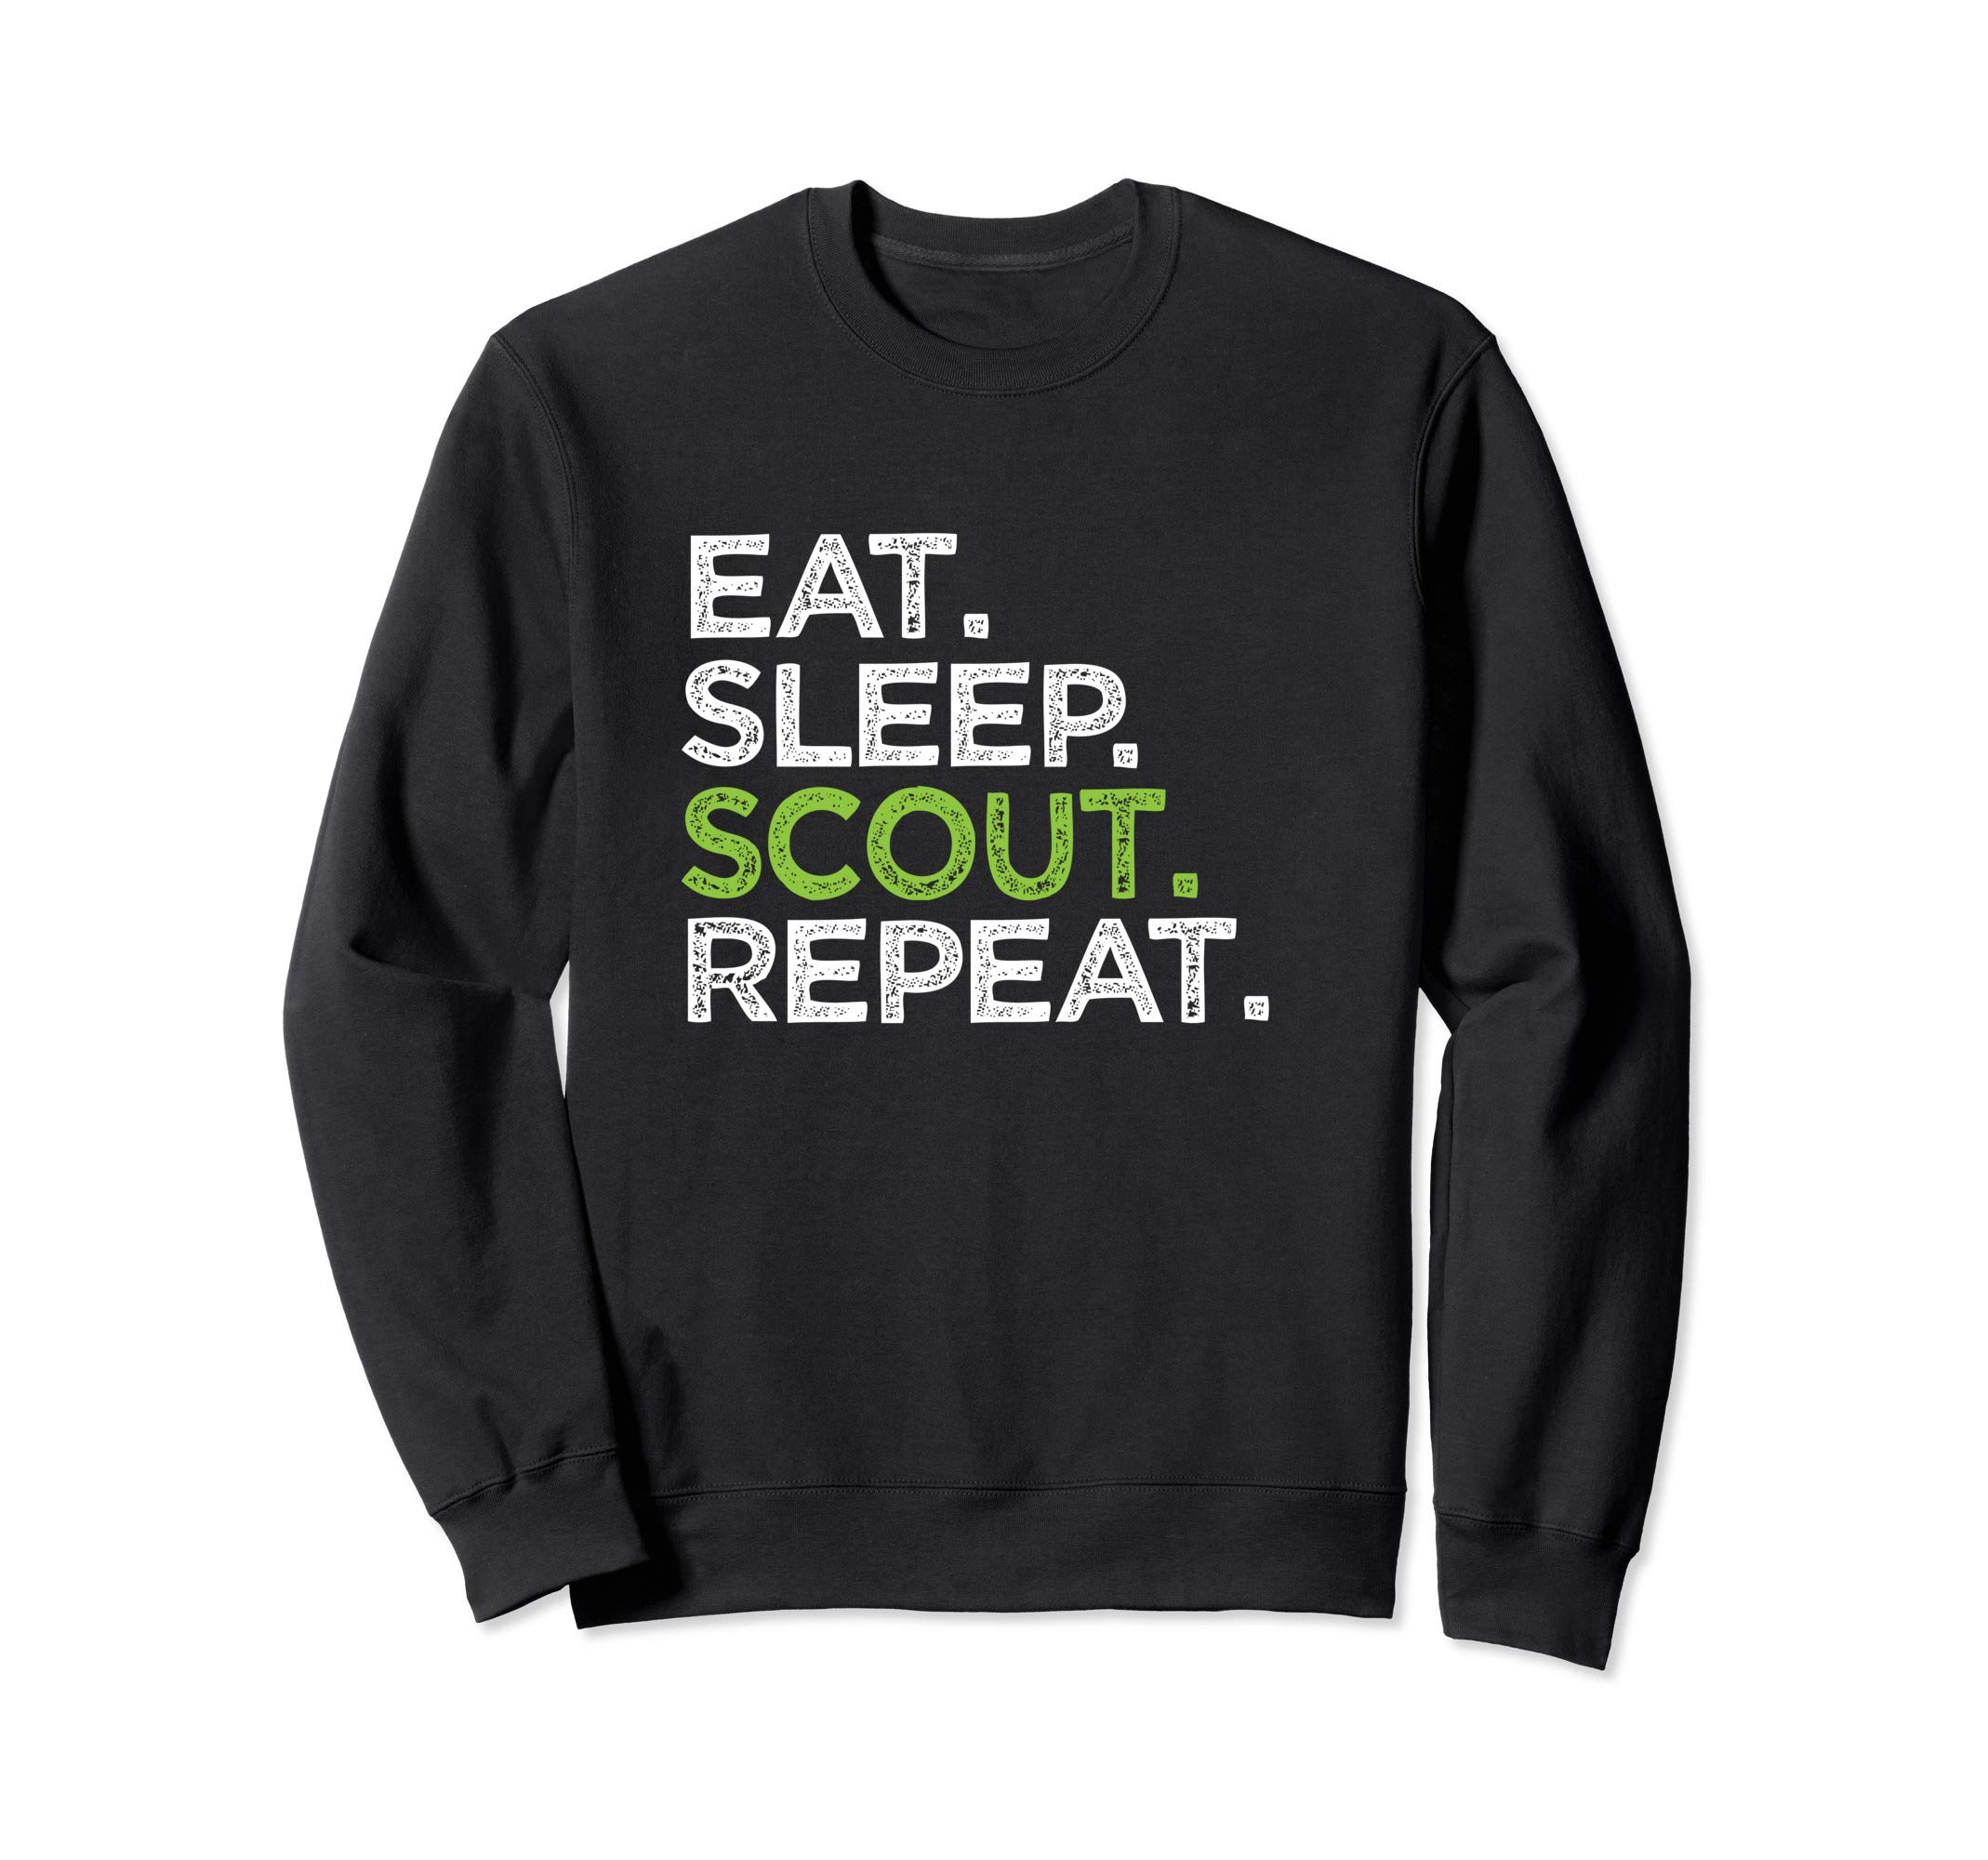 Cute Eat Sleep Scout Repeat Cub Love Scouting Leader Gift Sweatshirt by Retro Training Motivation Quotes Tees.